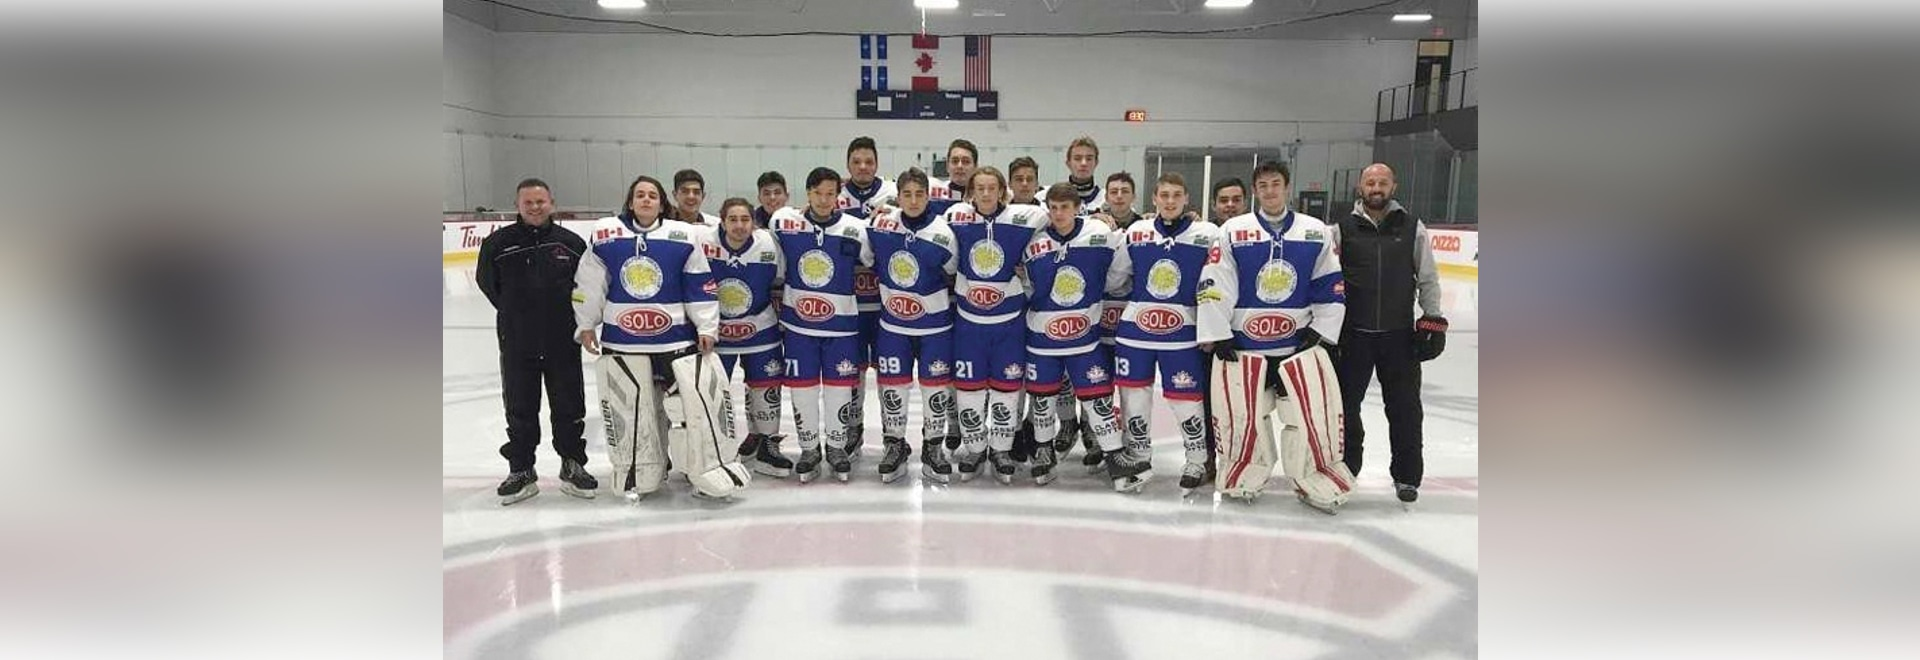 Hockey Team SOLO Swiss SA